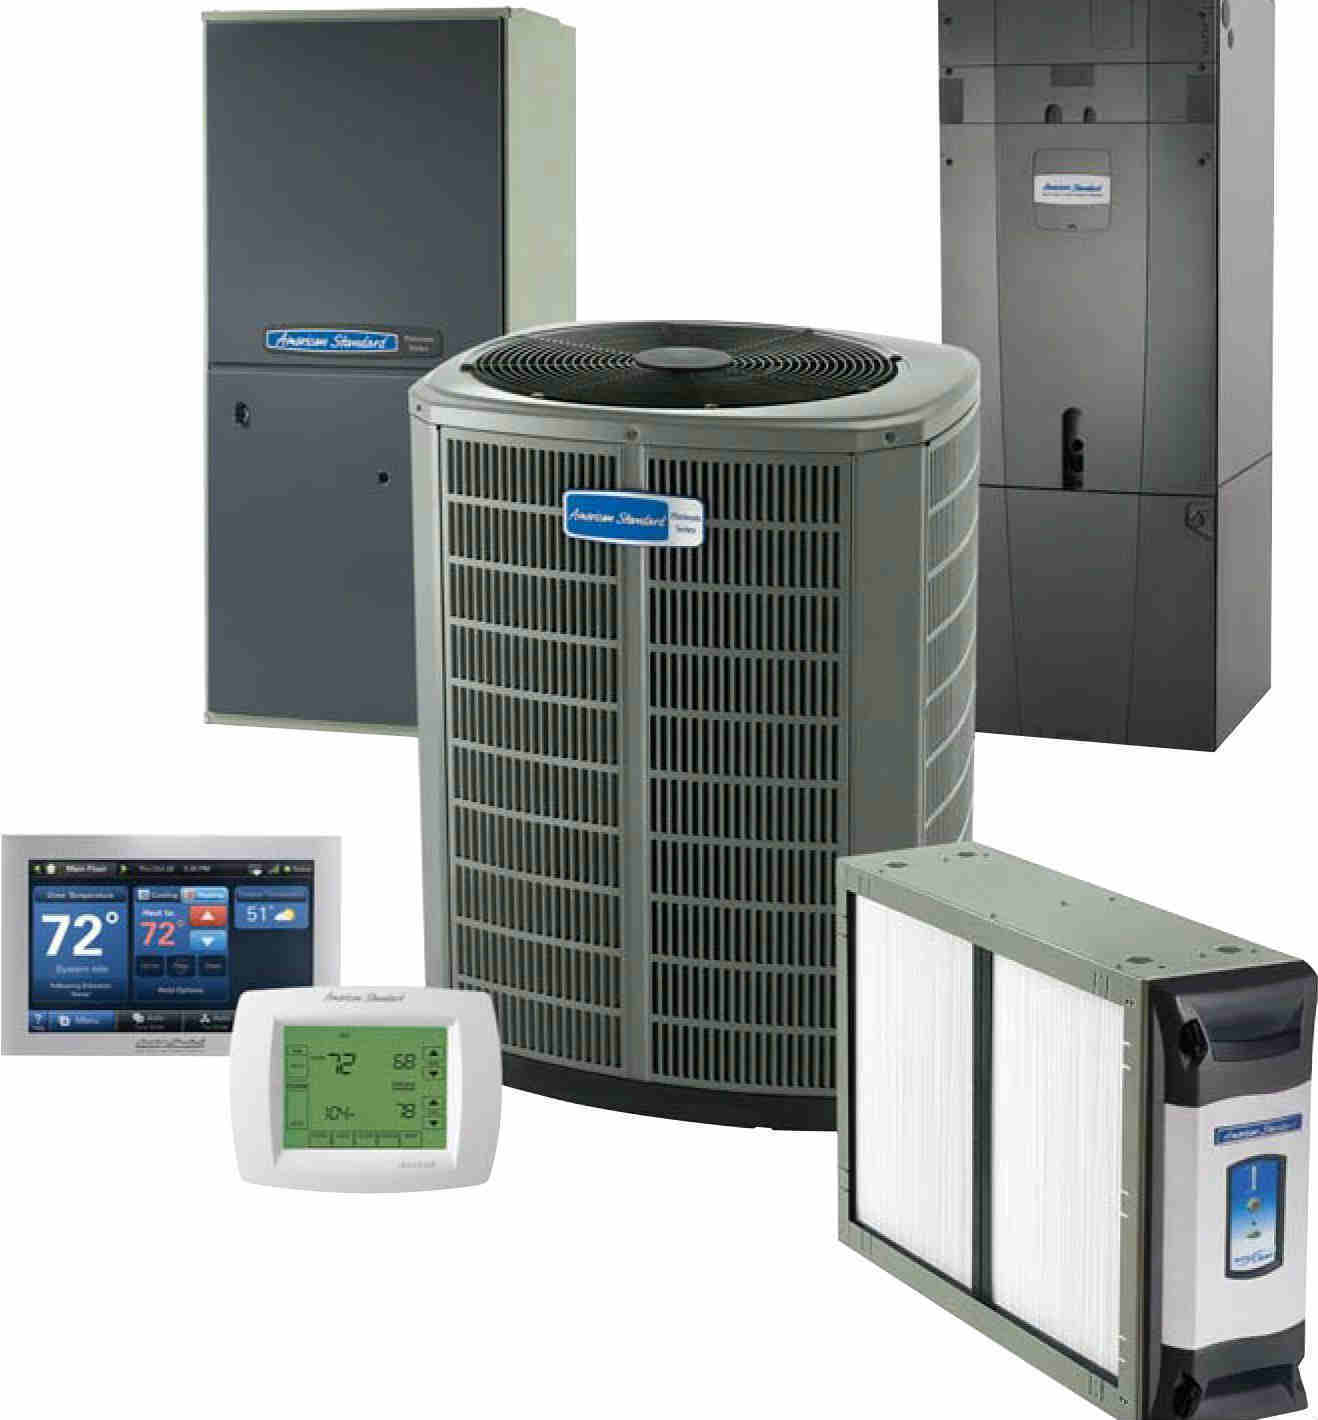 Choosing a Perfect Air Conditioning Repair Contractor For All Your Hvac Needs